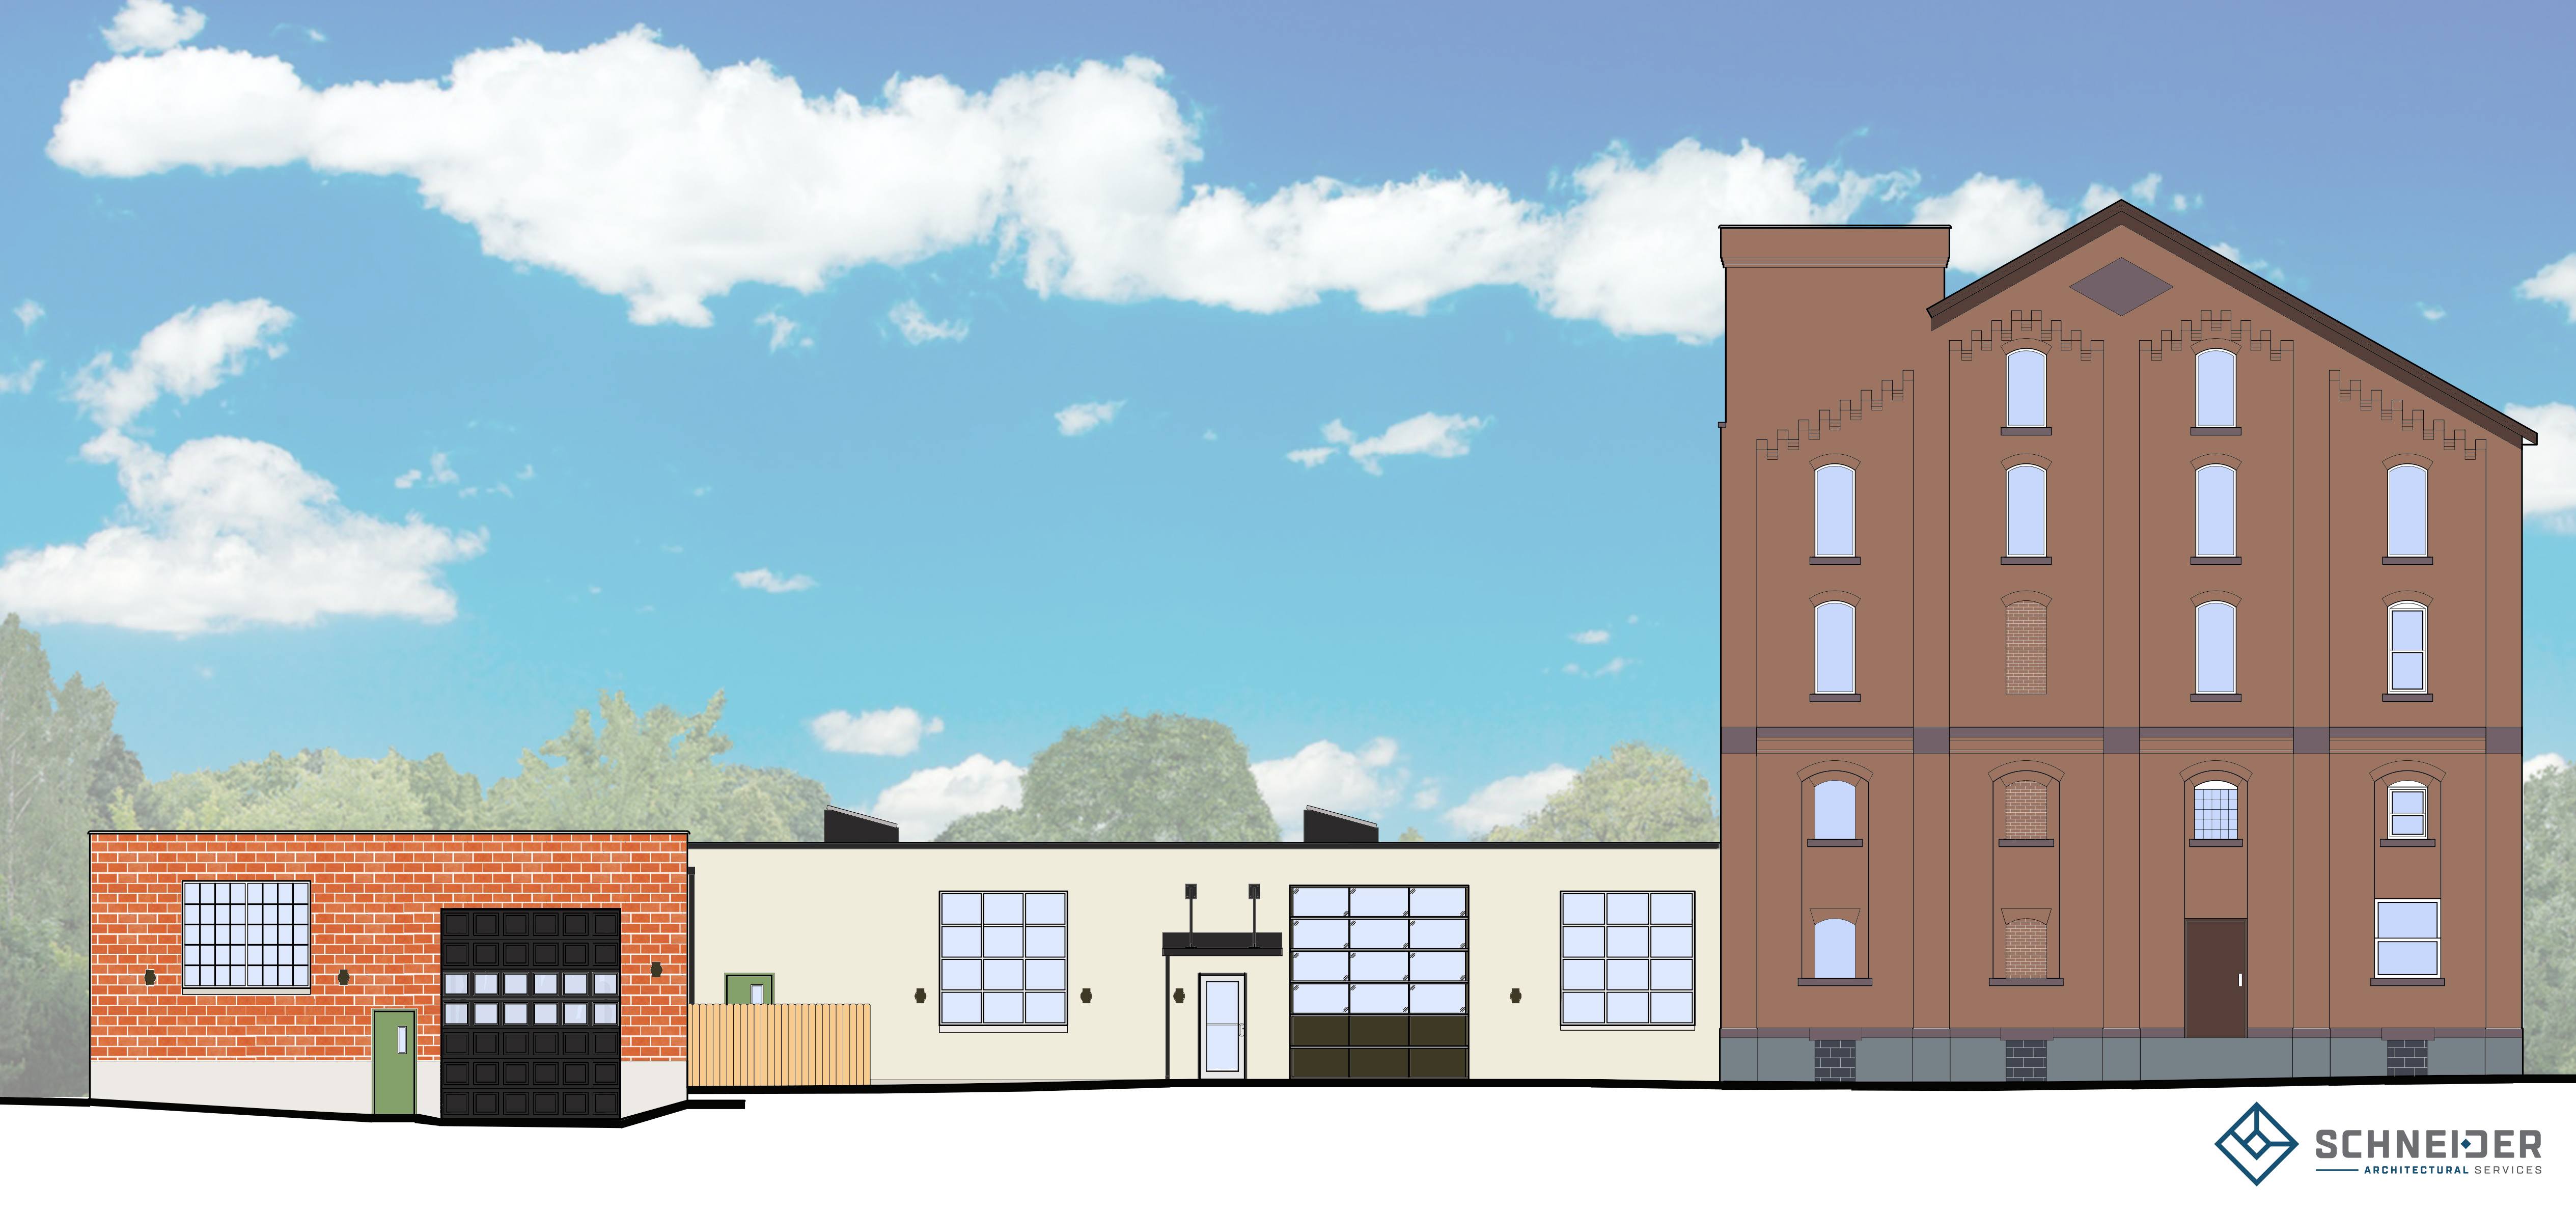 Here is a rendering of the proposed Community Beer Works project.